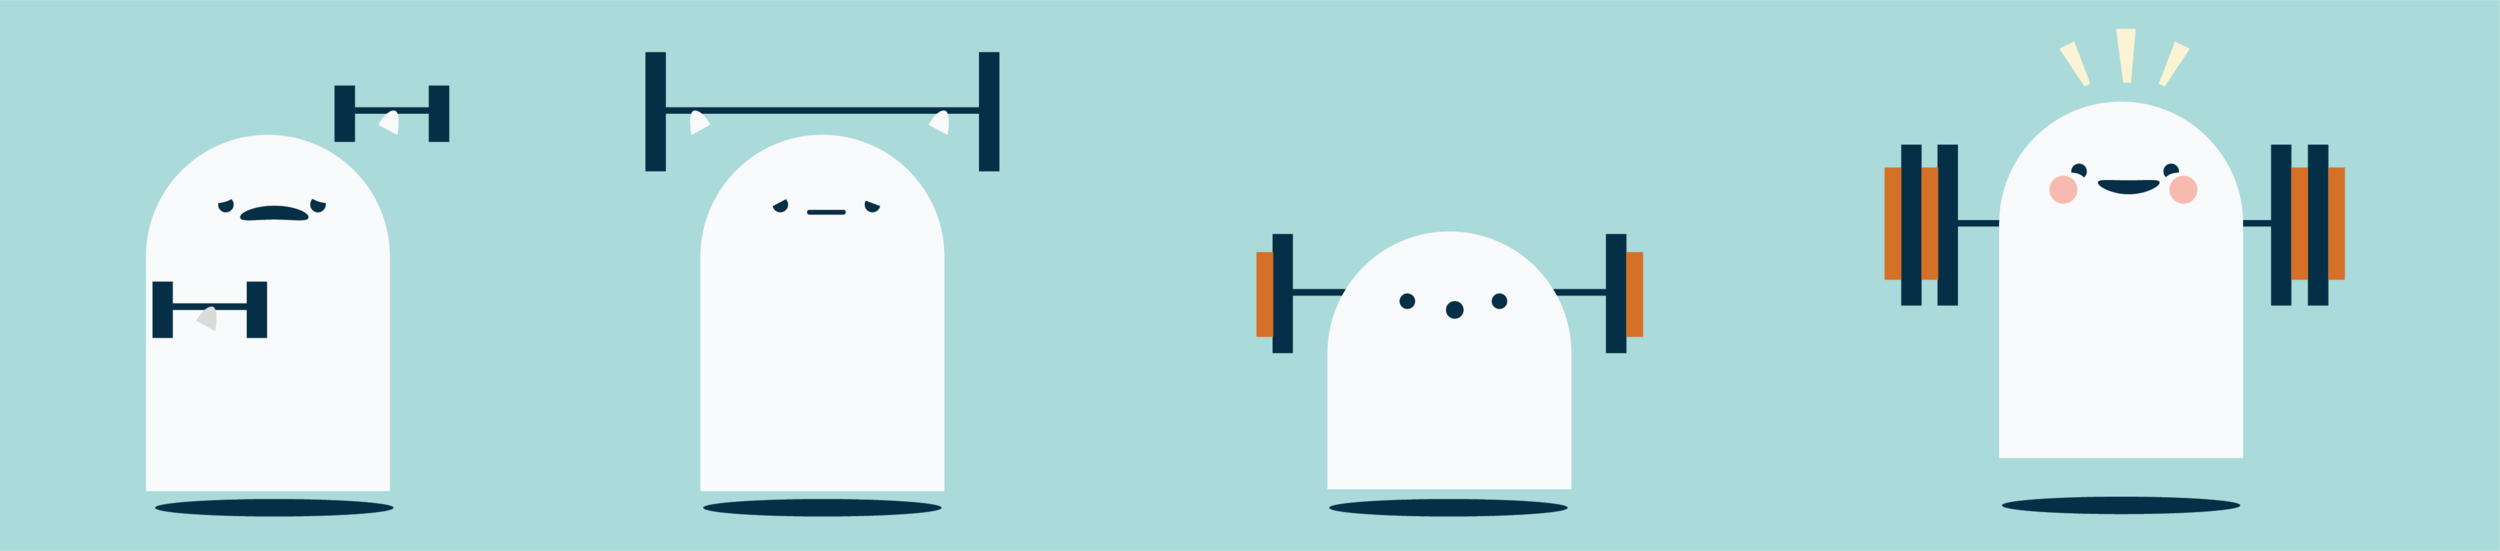 Gym Ghost-01.png